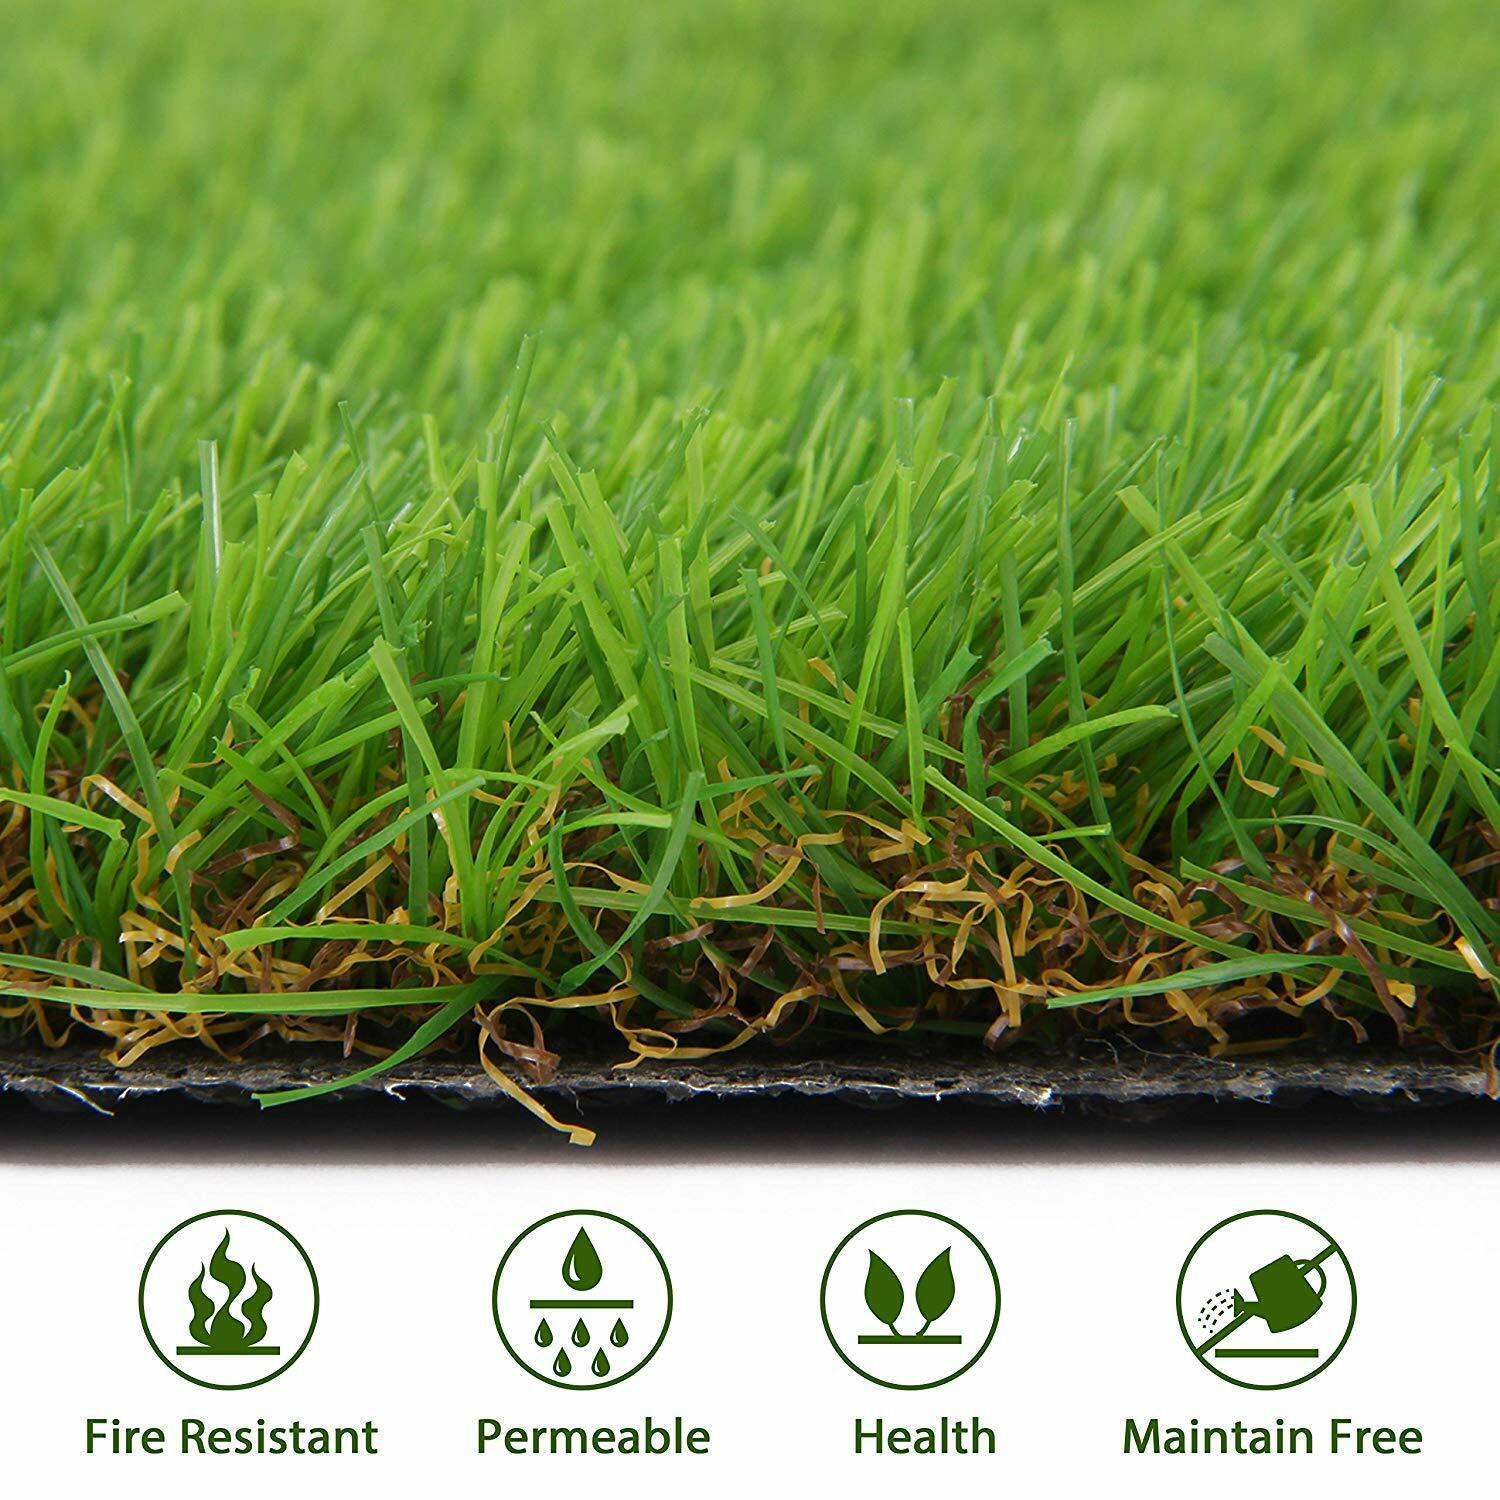 Details About Artificial Grass Turf Lawn Fake Grass Mat Synthetic Turf Rug Carpet Garden